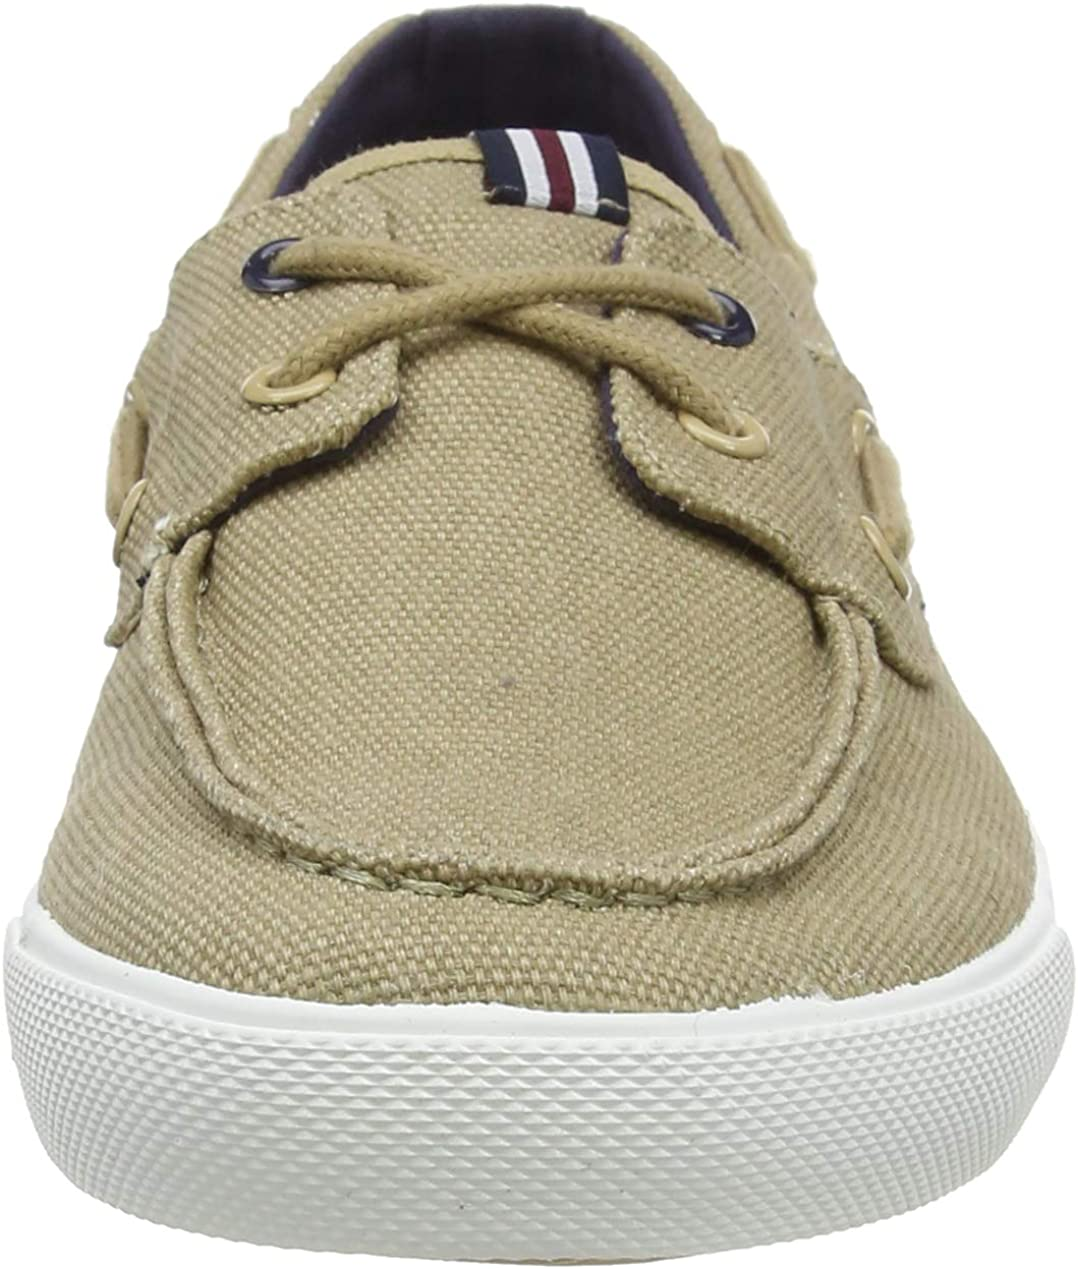 Joules Falmouth Chaussures Bateau Homme